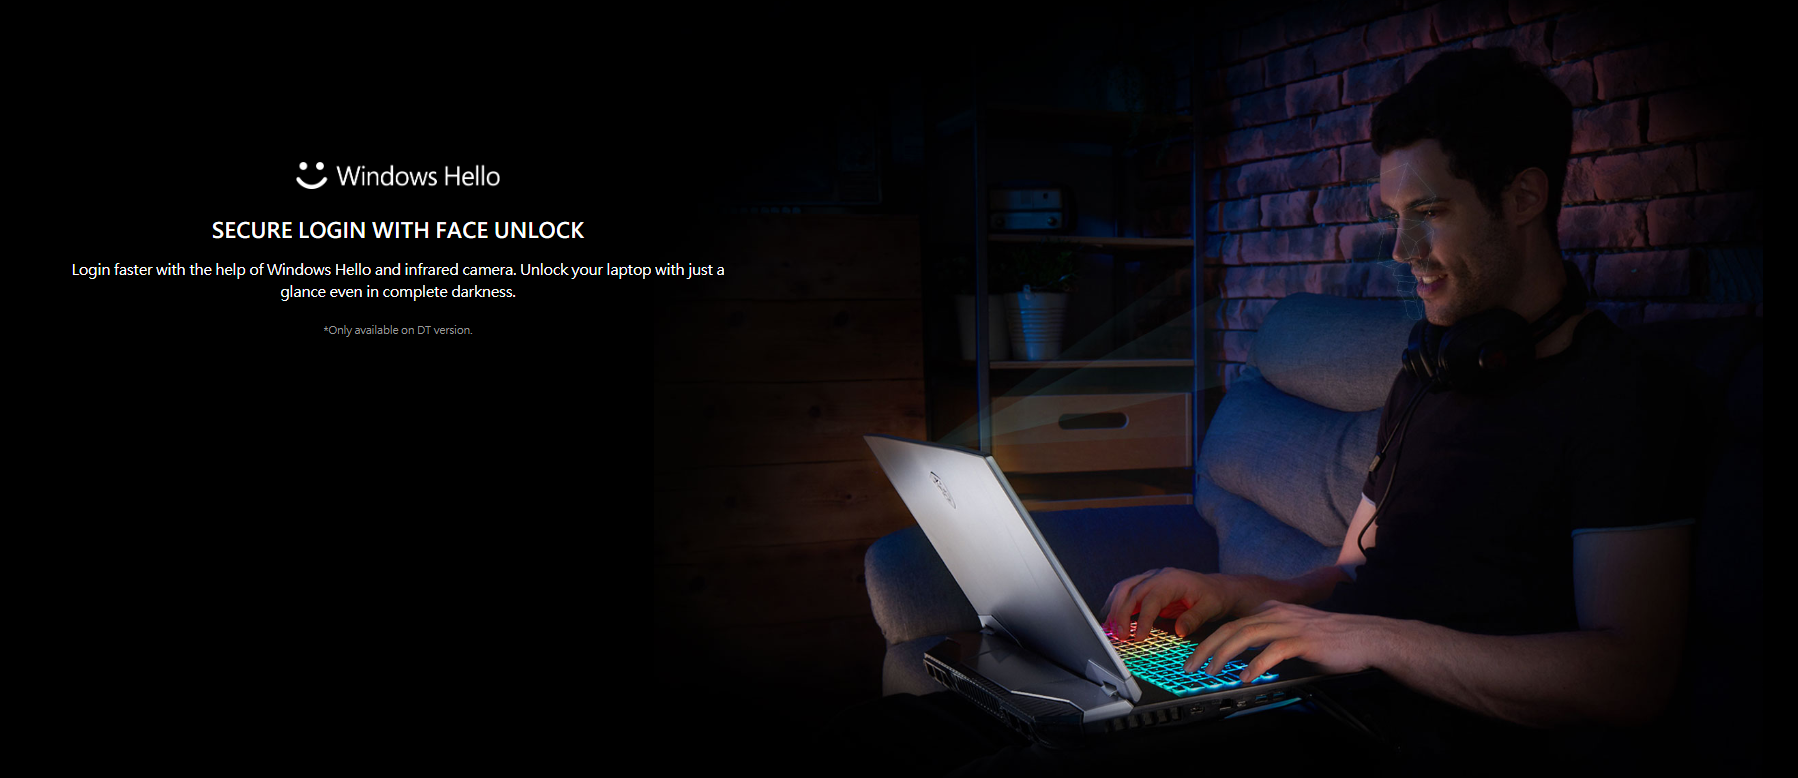 Login faster with the help of Windows Hello and infrared camera. Unlock your laptop with just a glance even in complete darkness.